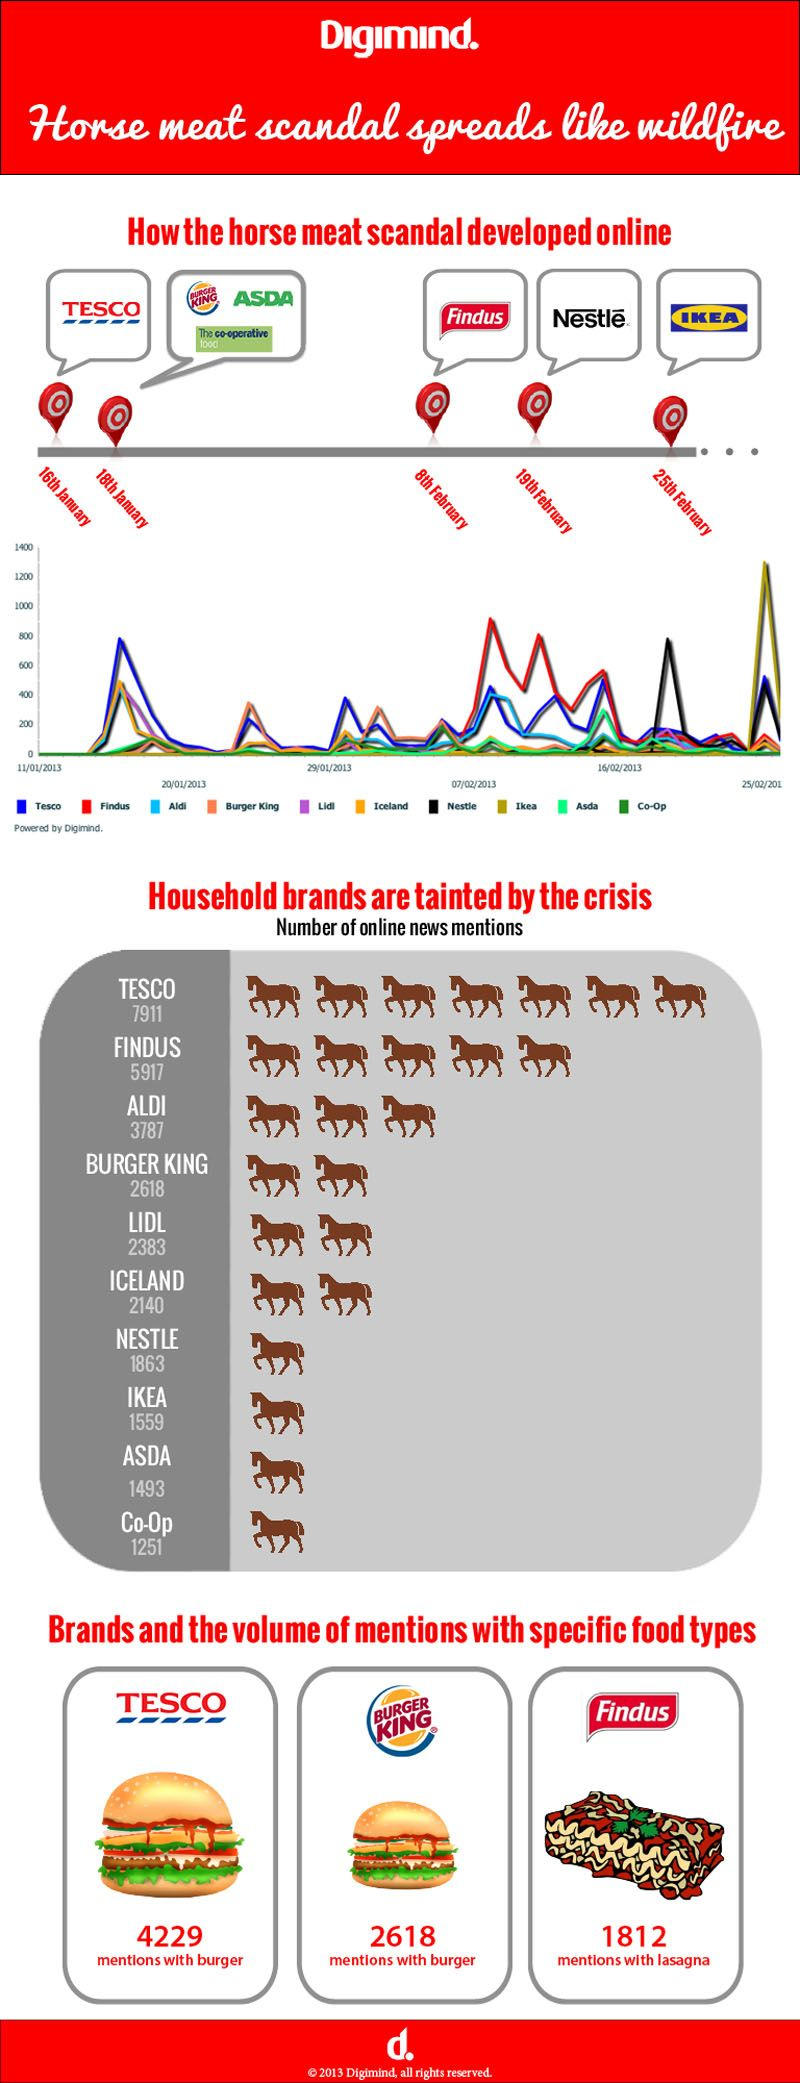 Infographic shows how news traveled about the horse meat